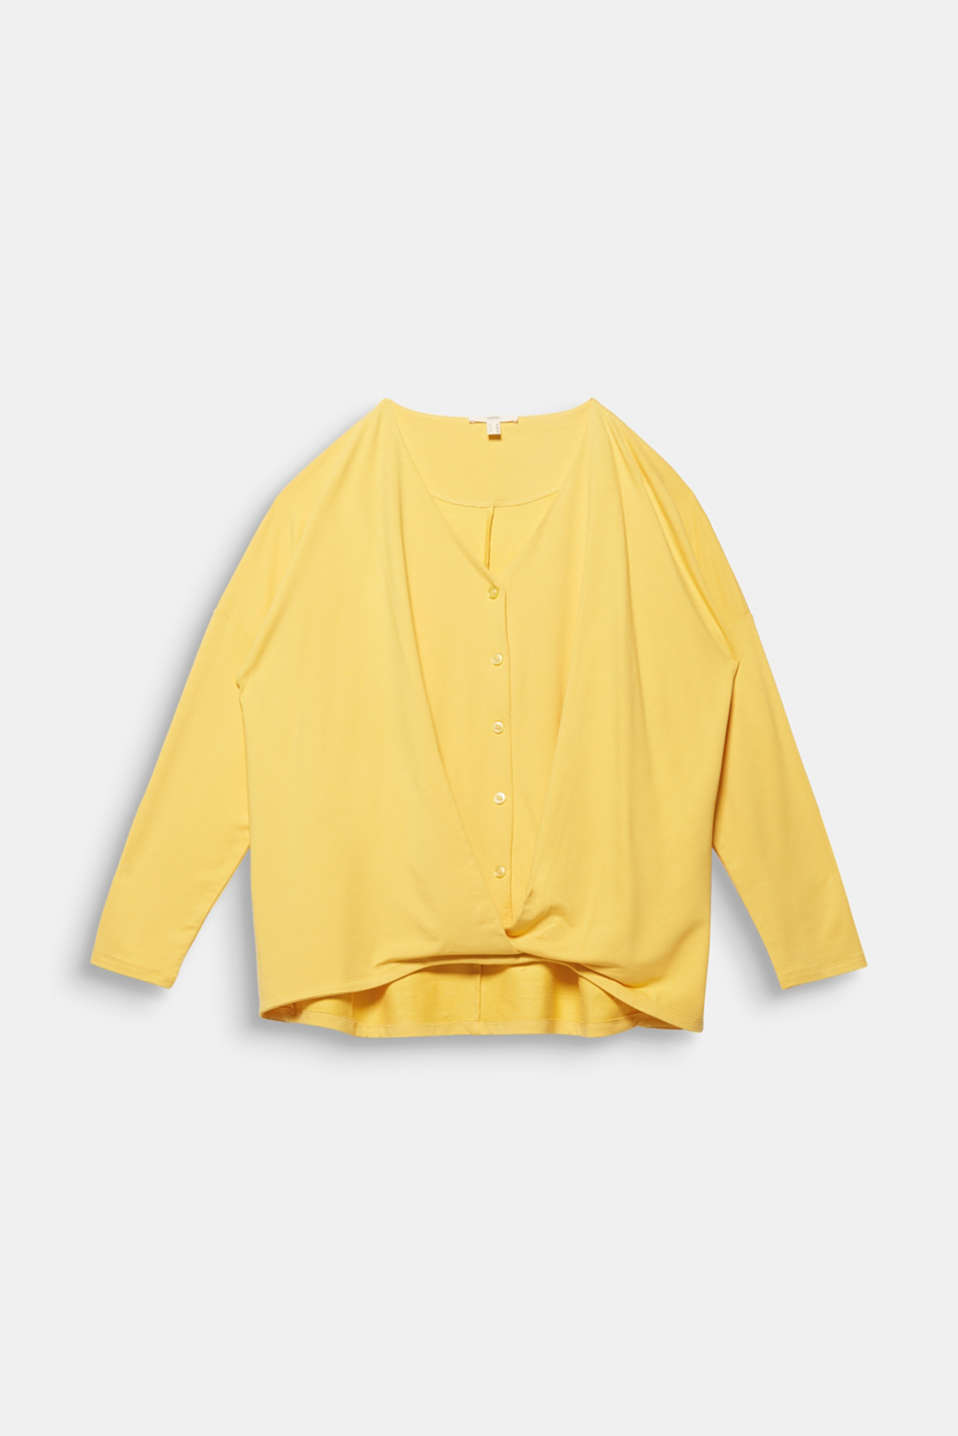 CURVY long sleeve top with a button placket and a wrap-around effect, YELLOW 3, detail image number 6